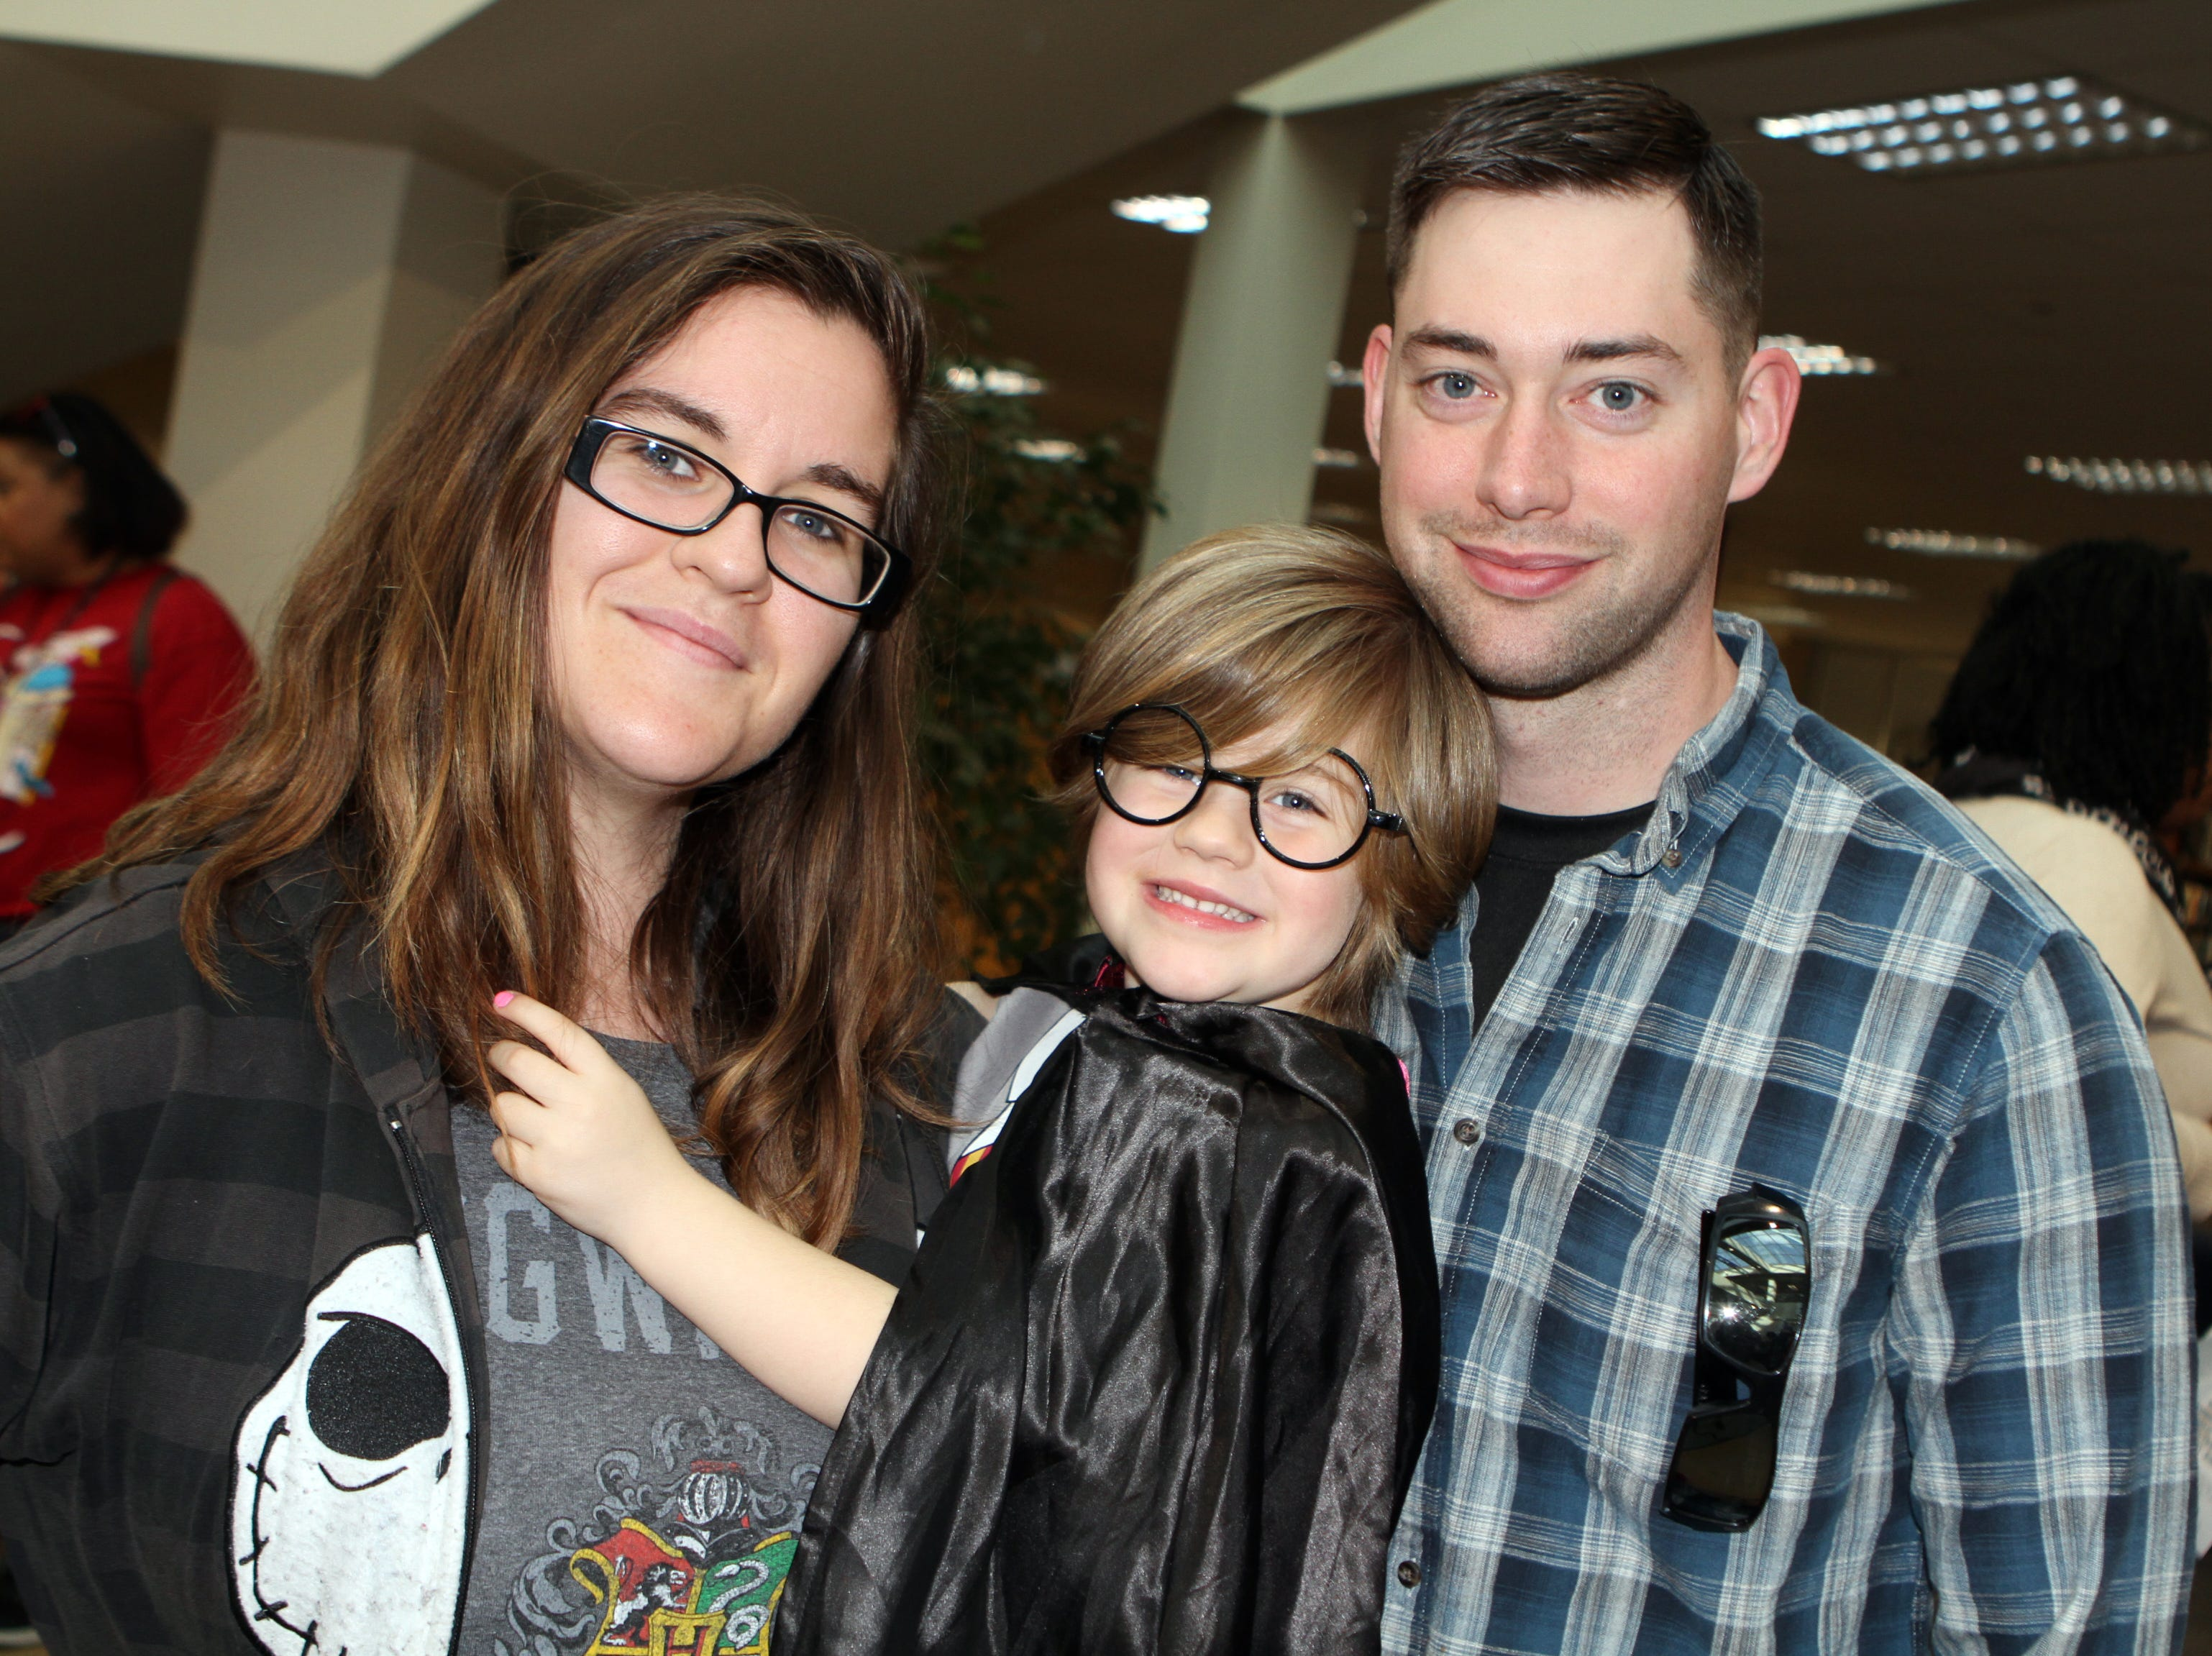 Brittany, Lily and Eric Lane at CMC Public Library's annual Sci-Fi Expo on Saturday, November 3, 2018.